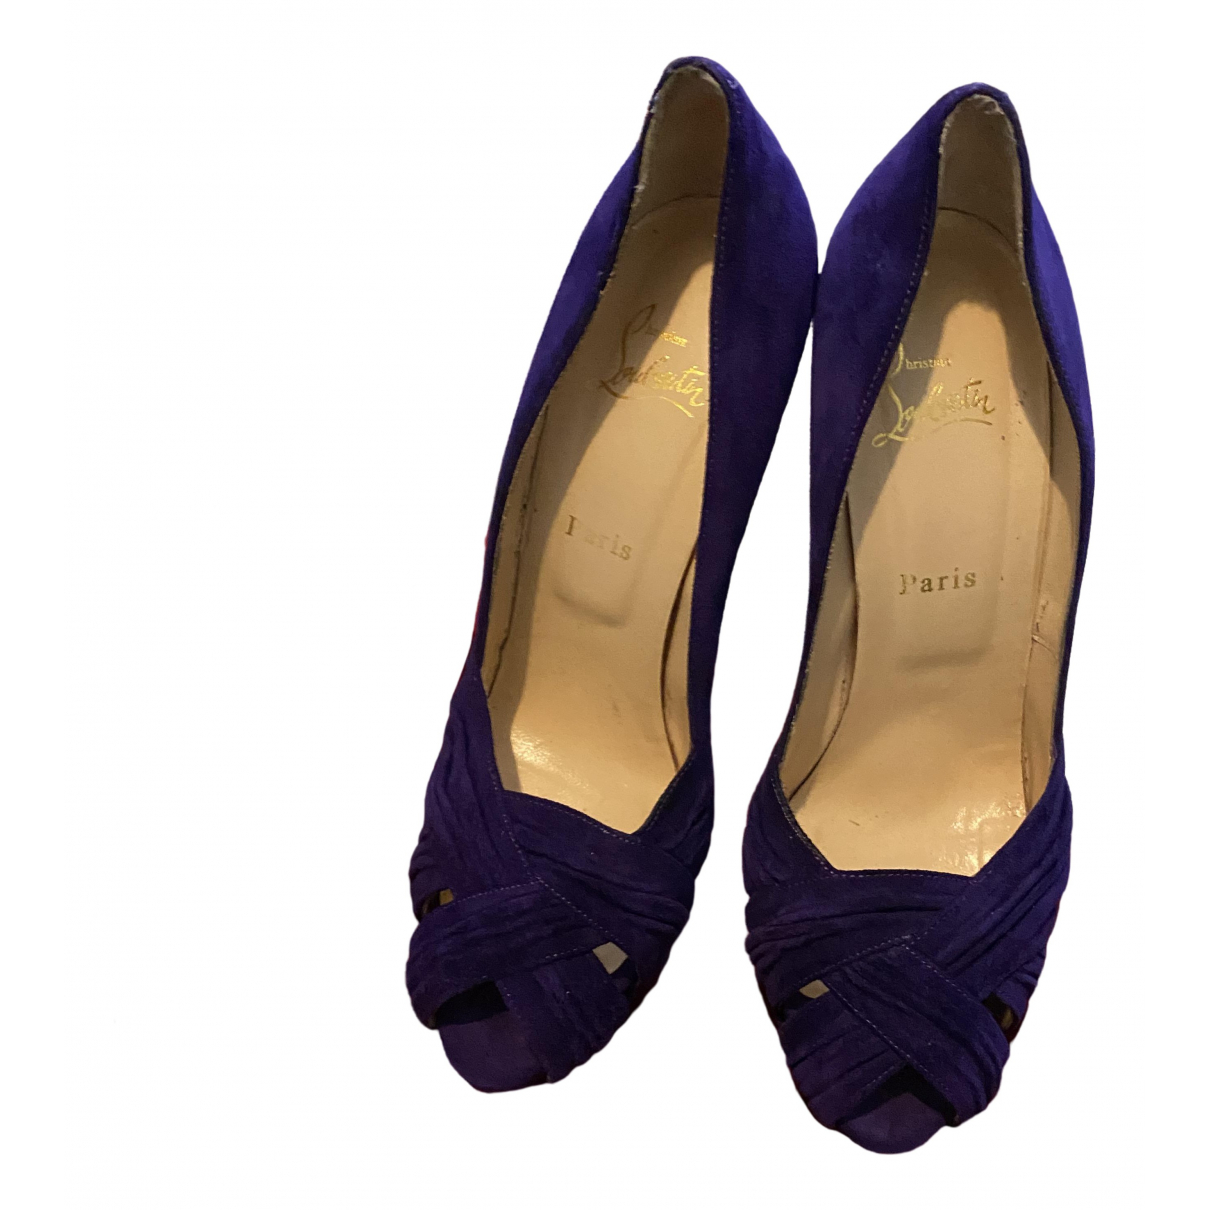 Christian Louboutin \N Purple Suede Heels for Women 41 EU